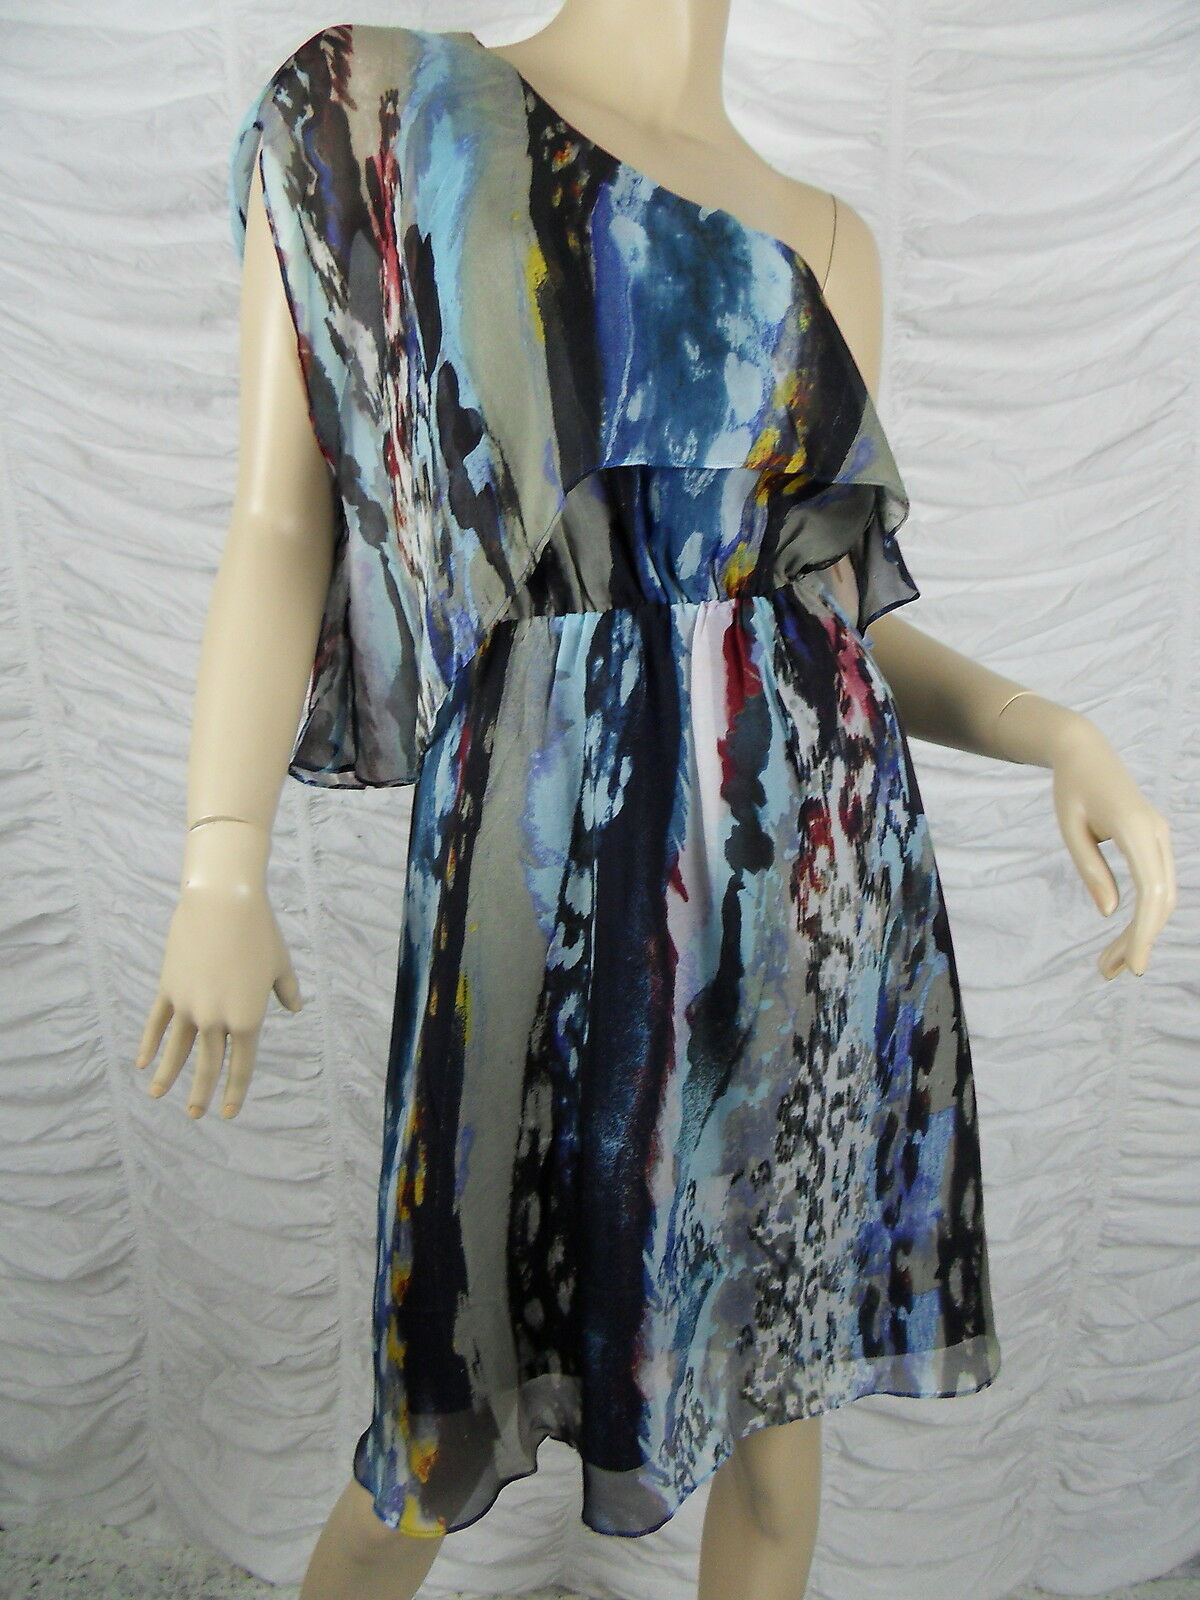 OJAY bluee off-shoulder marble print 100% silk dress size 10 NWOT